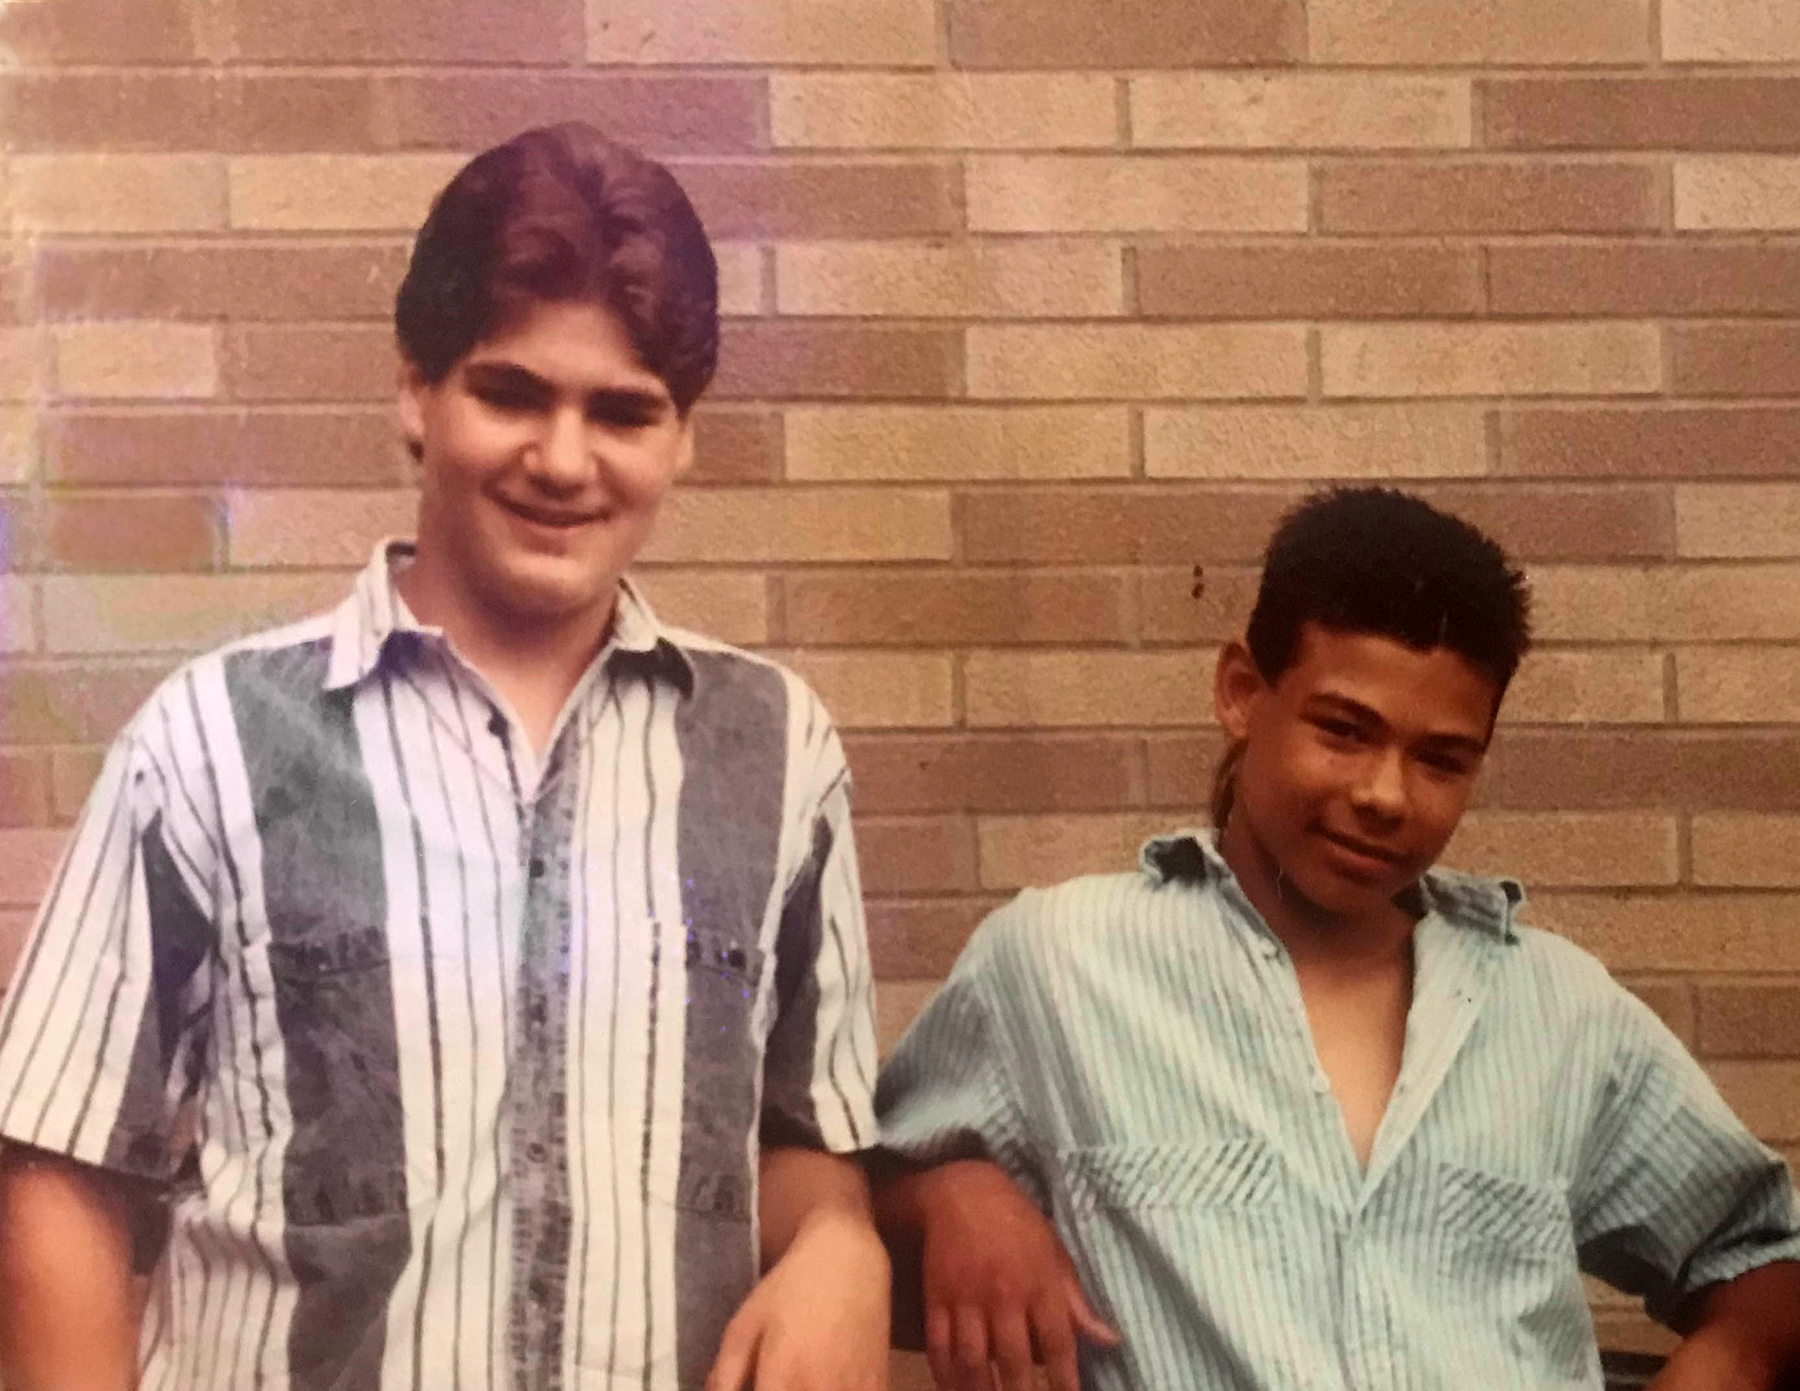 LOST BOYS: Anthony DiPippo (left) and Andrew Krivak